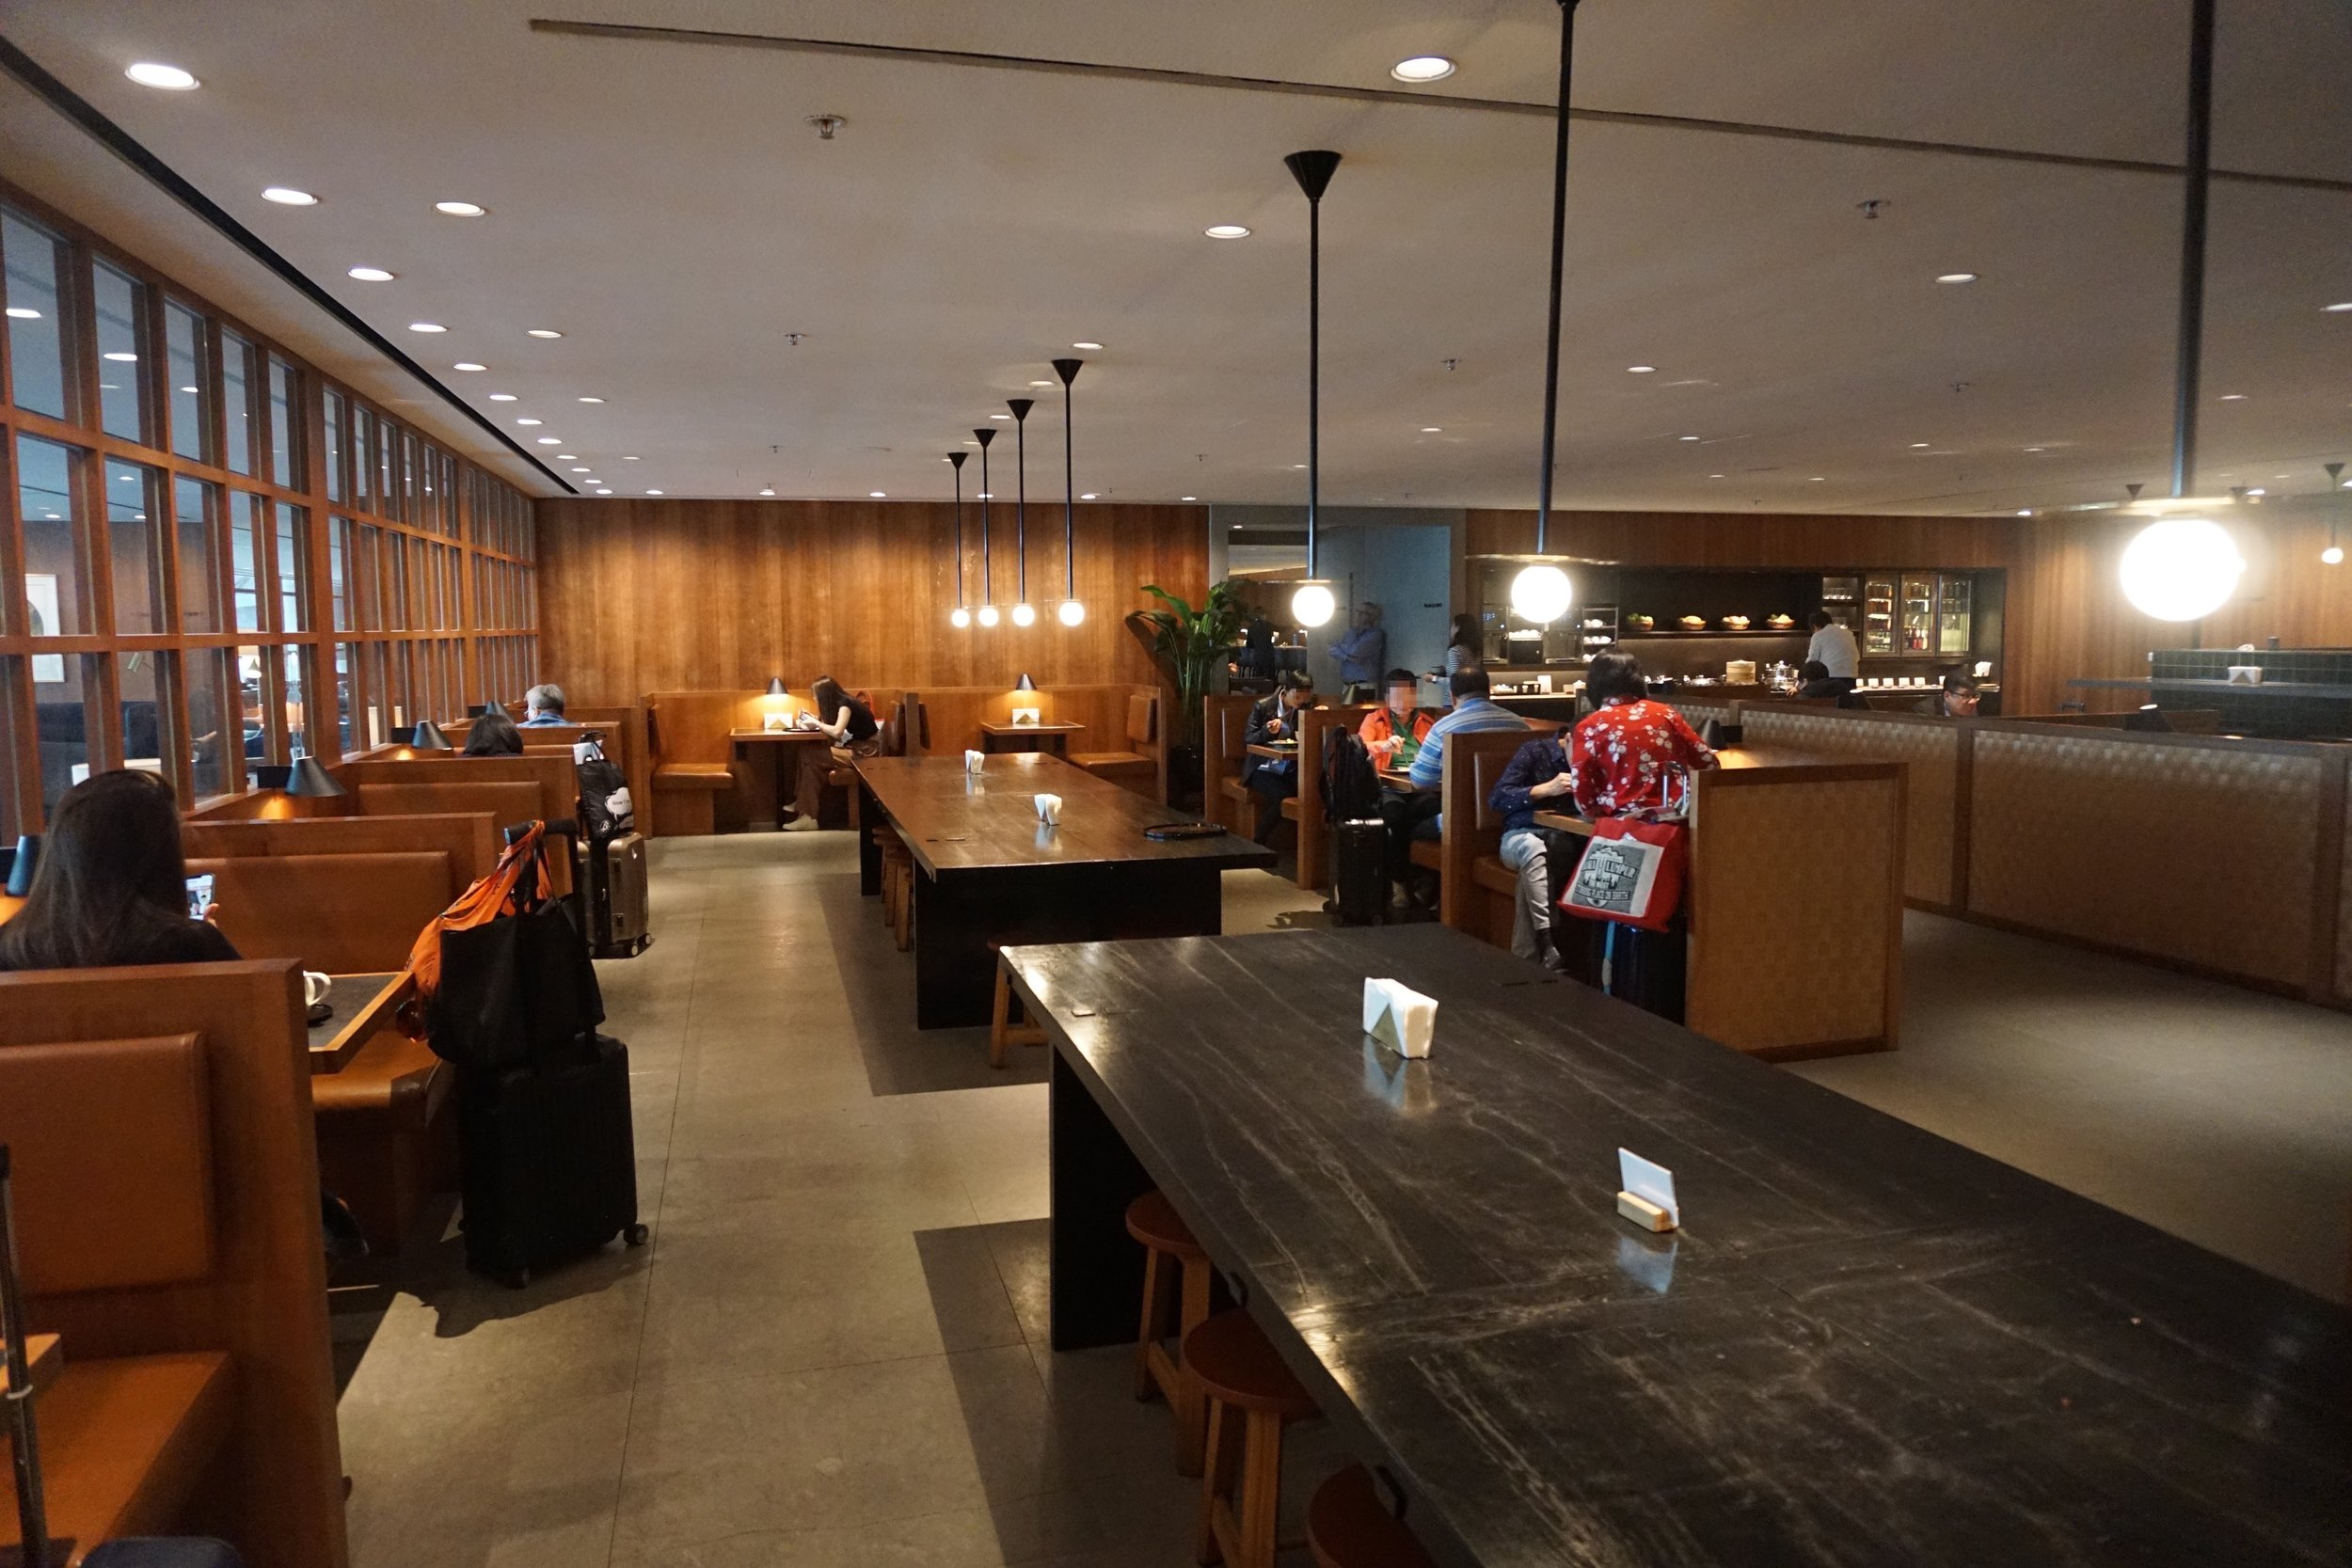 The Noodle Bar at the Pier Business Class Lounge